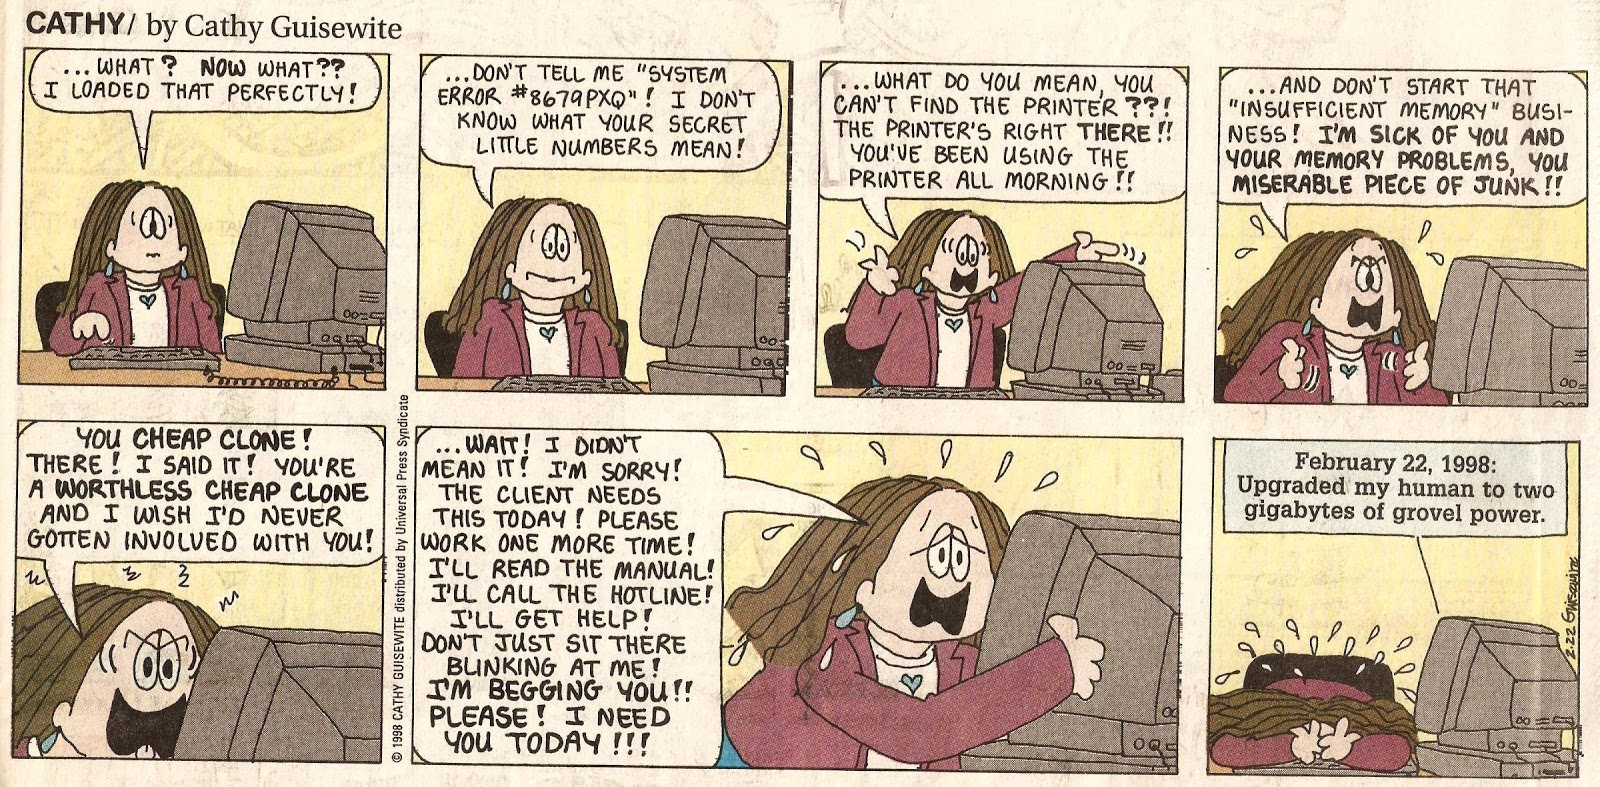 an analysis of the comic strip cathy by cythy guisewite About cathy guisewite: cathy lee guisewite is the cartoonist who created the comic strip cathy in 1976 her main cartoon character (cathy) is a career wo.